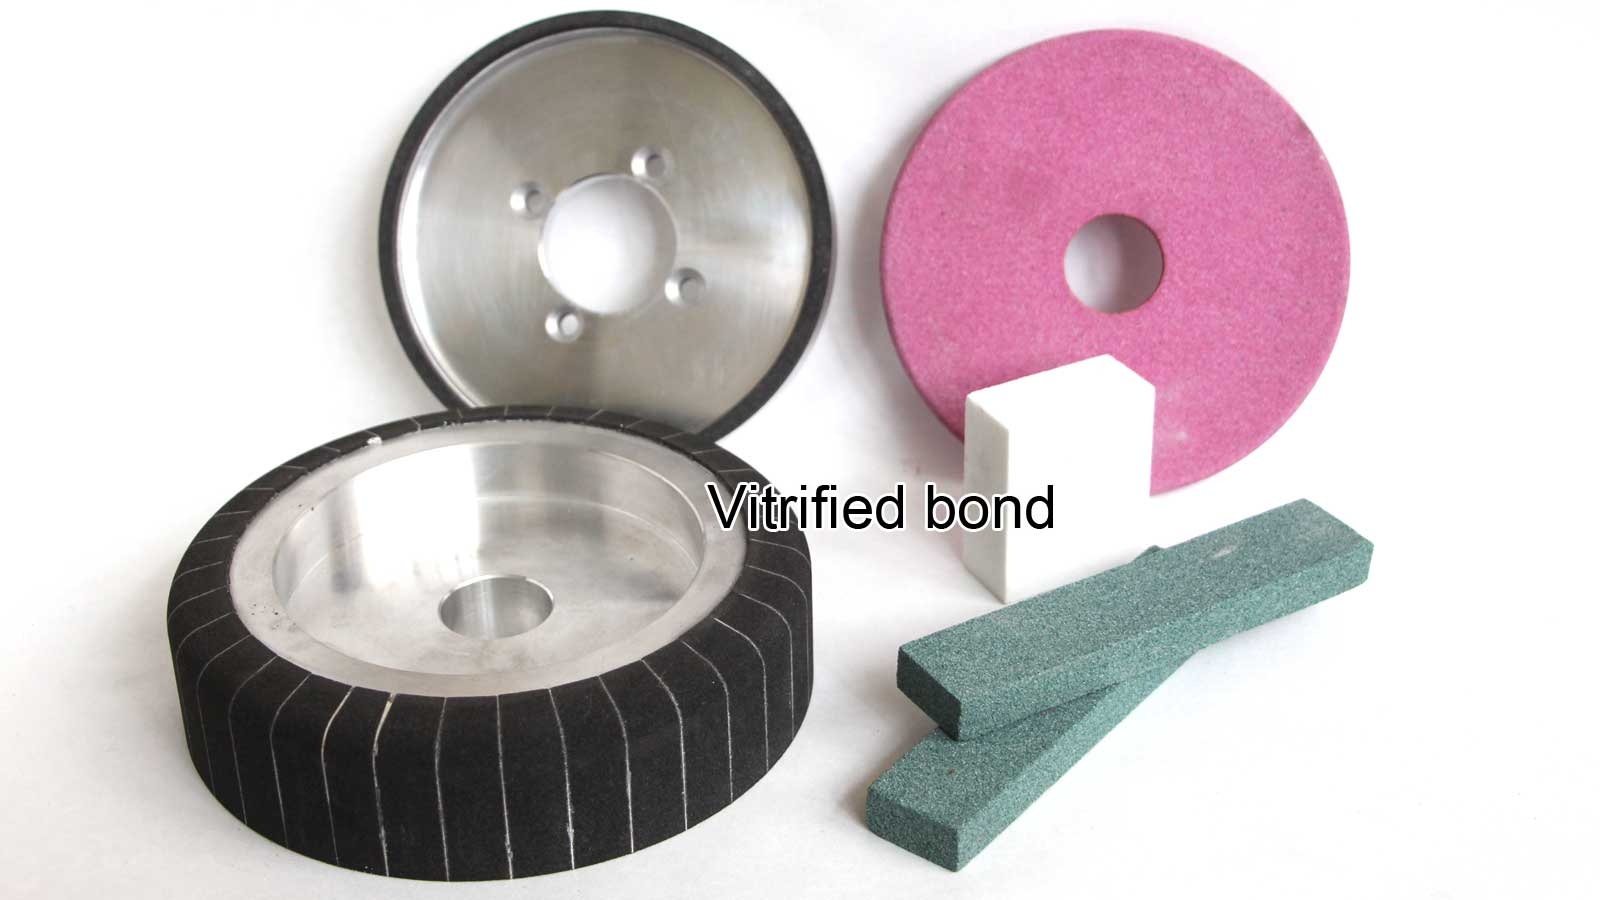 Vitrified-bond grinding wheels